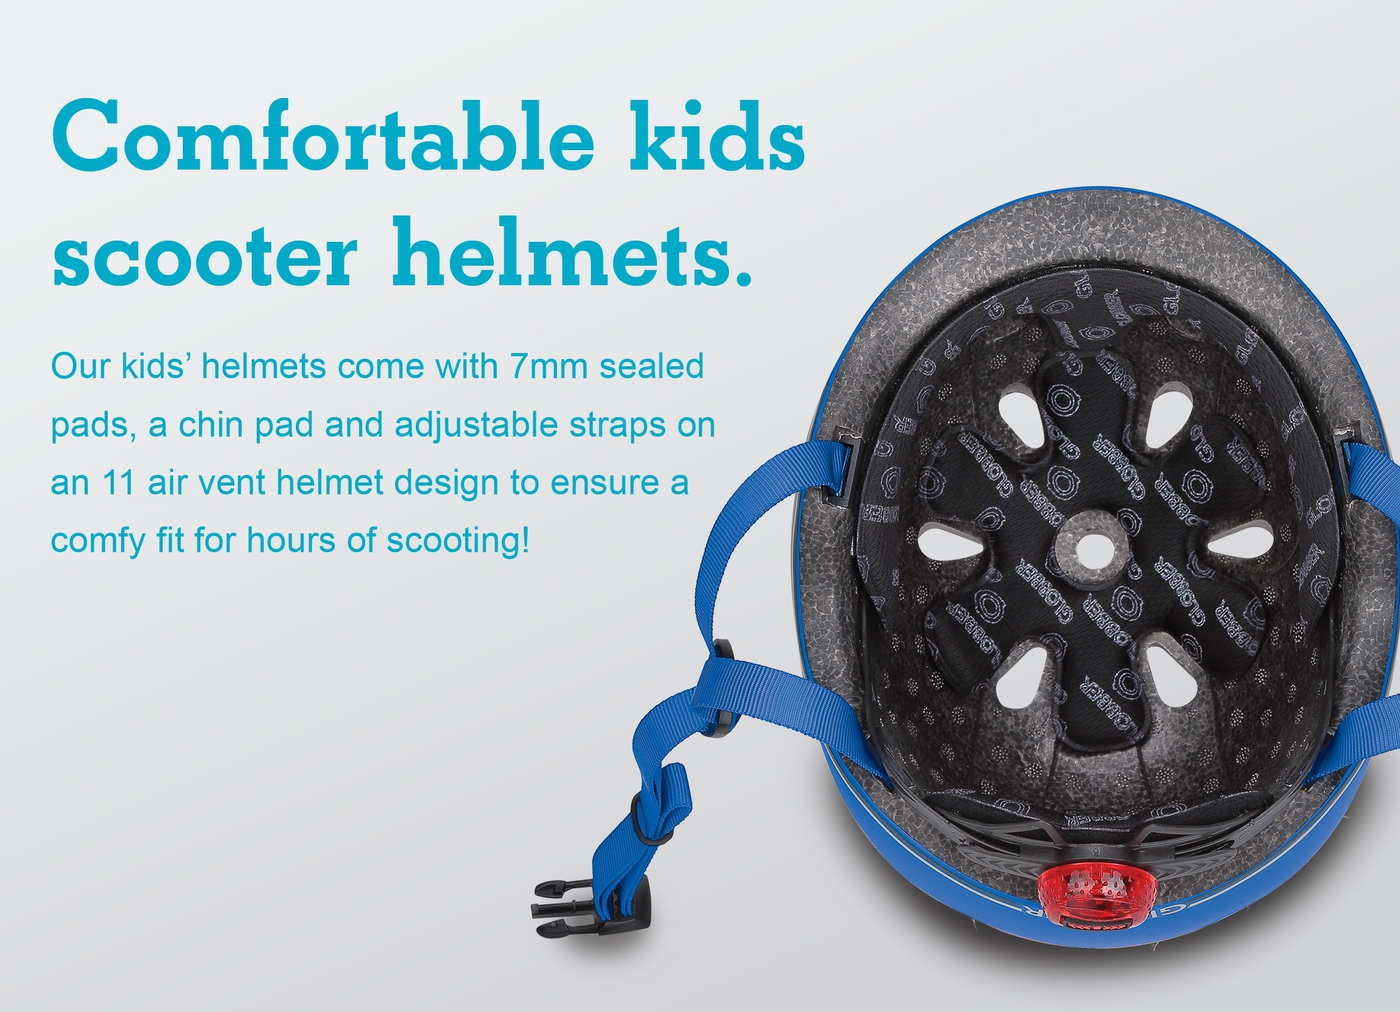 Comfortable kids scooter helmets.